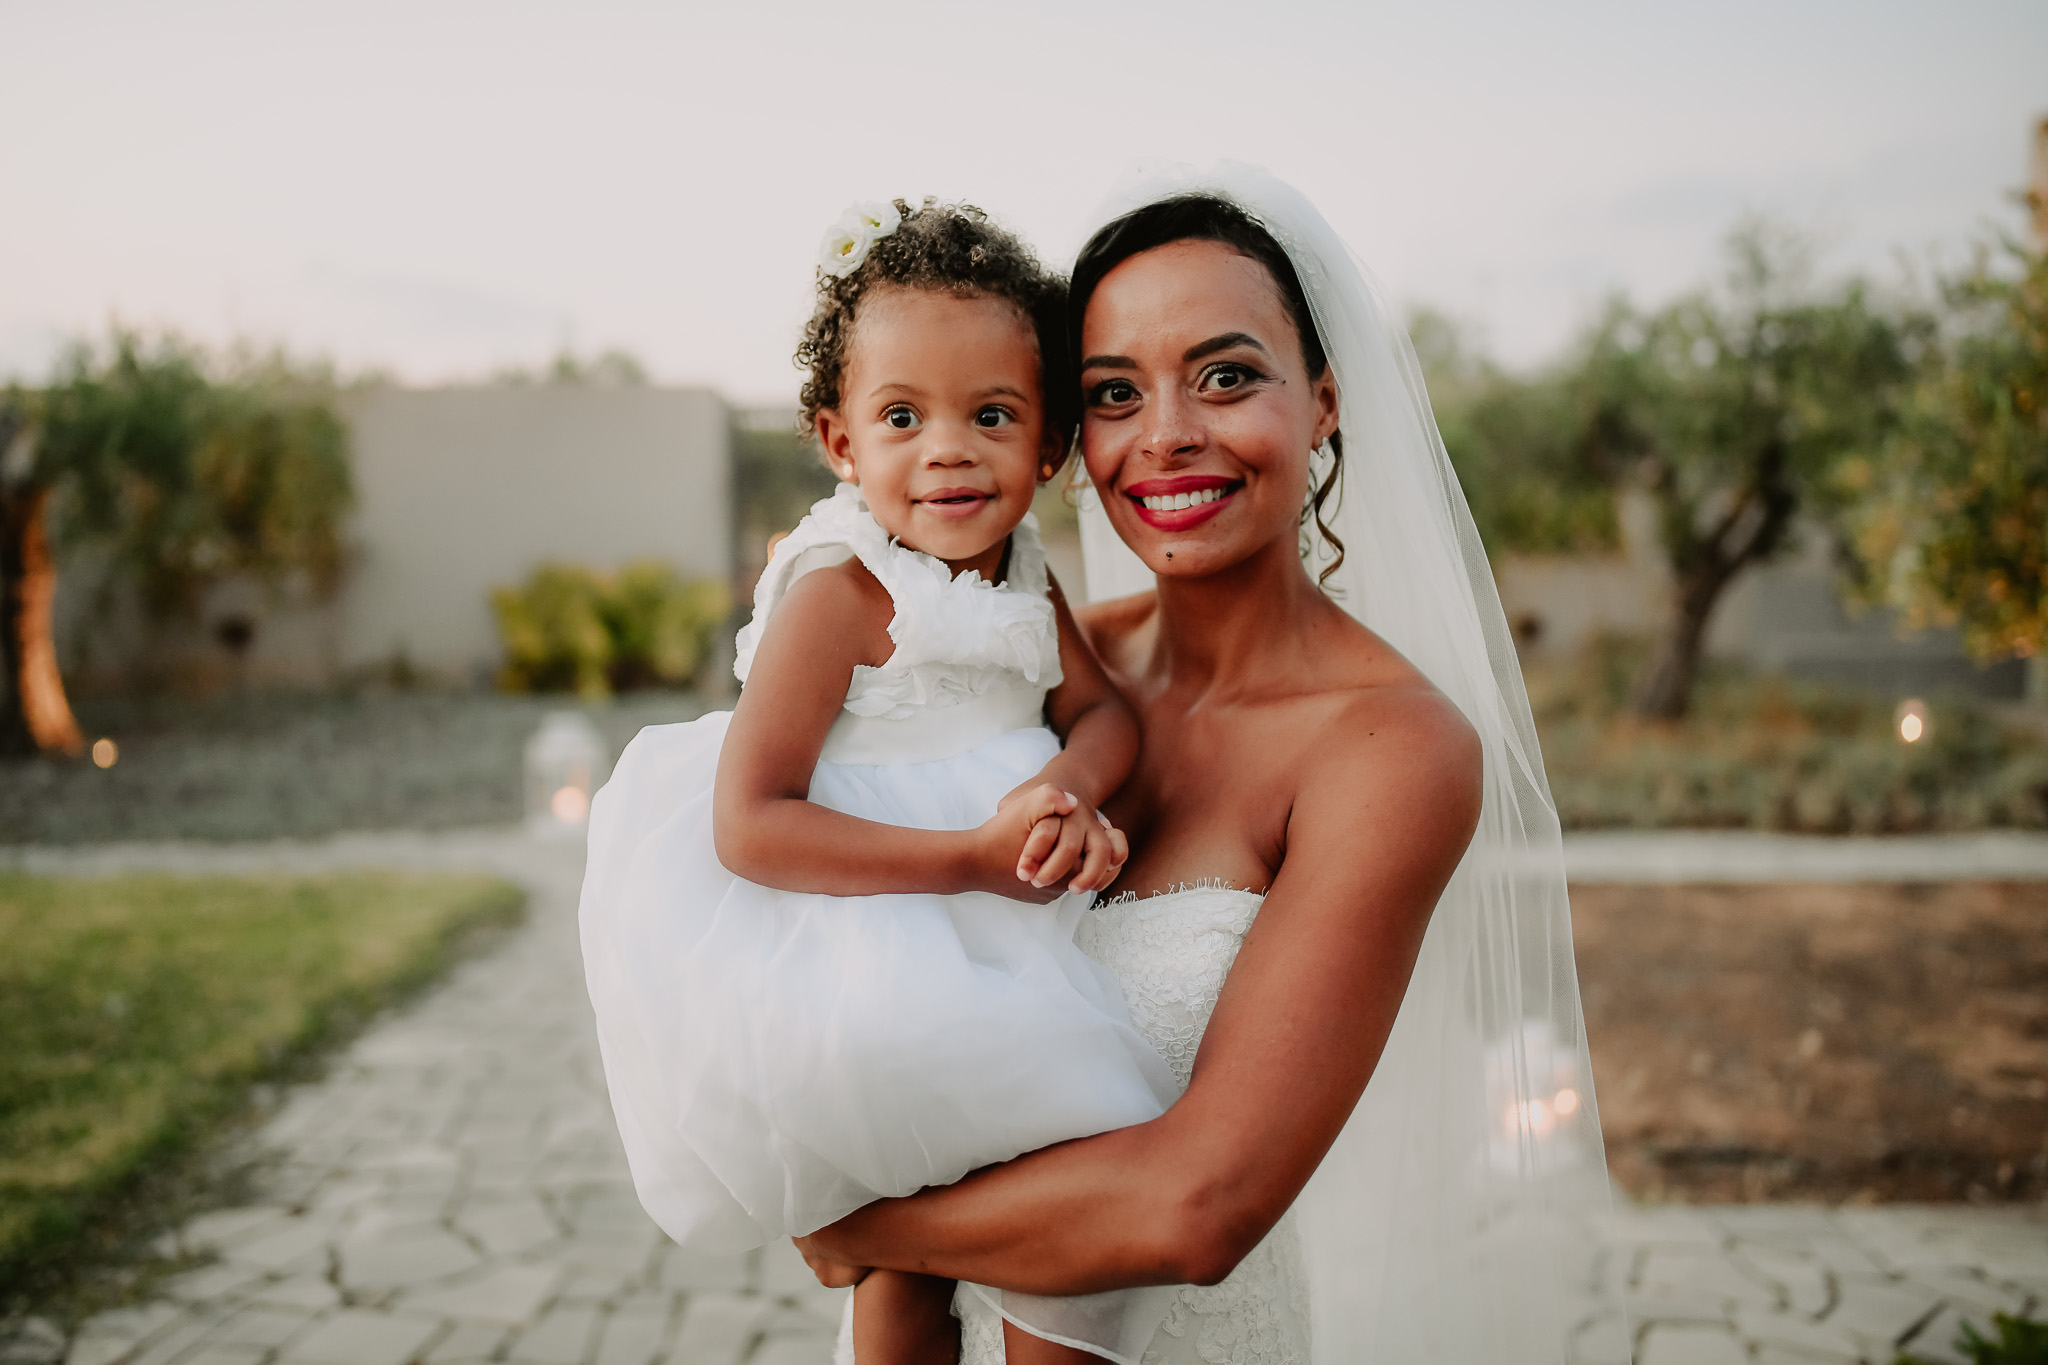 D850-field-test-real-world-review-wedding-sicily-9